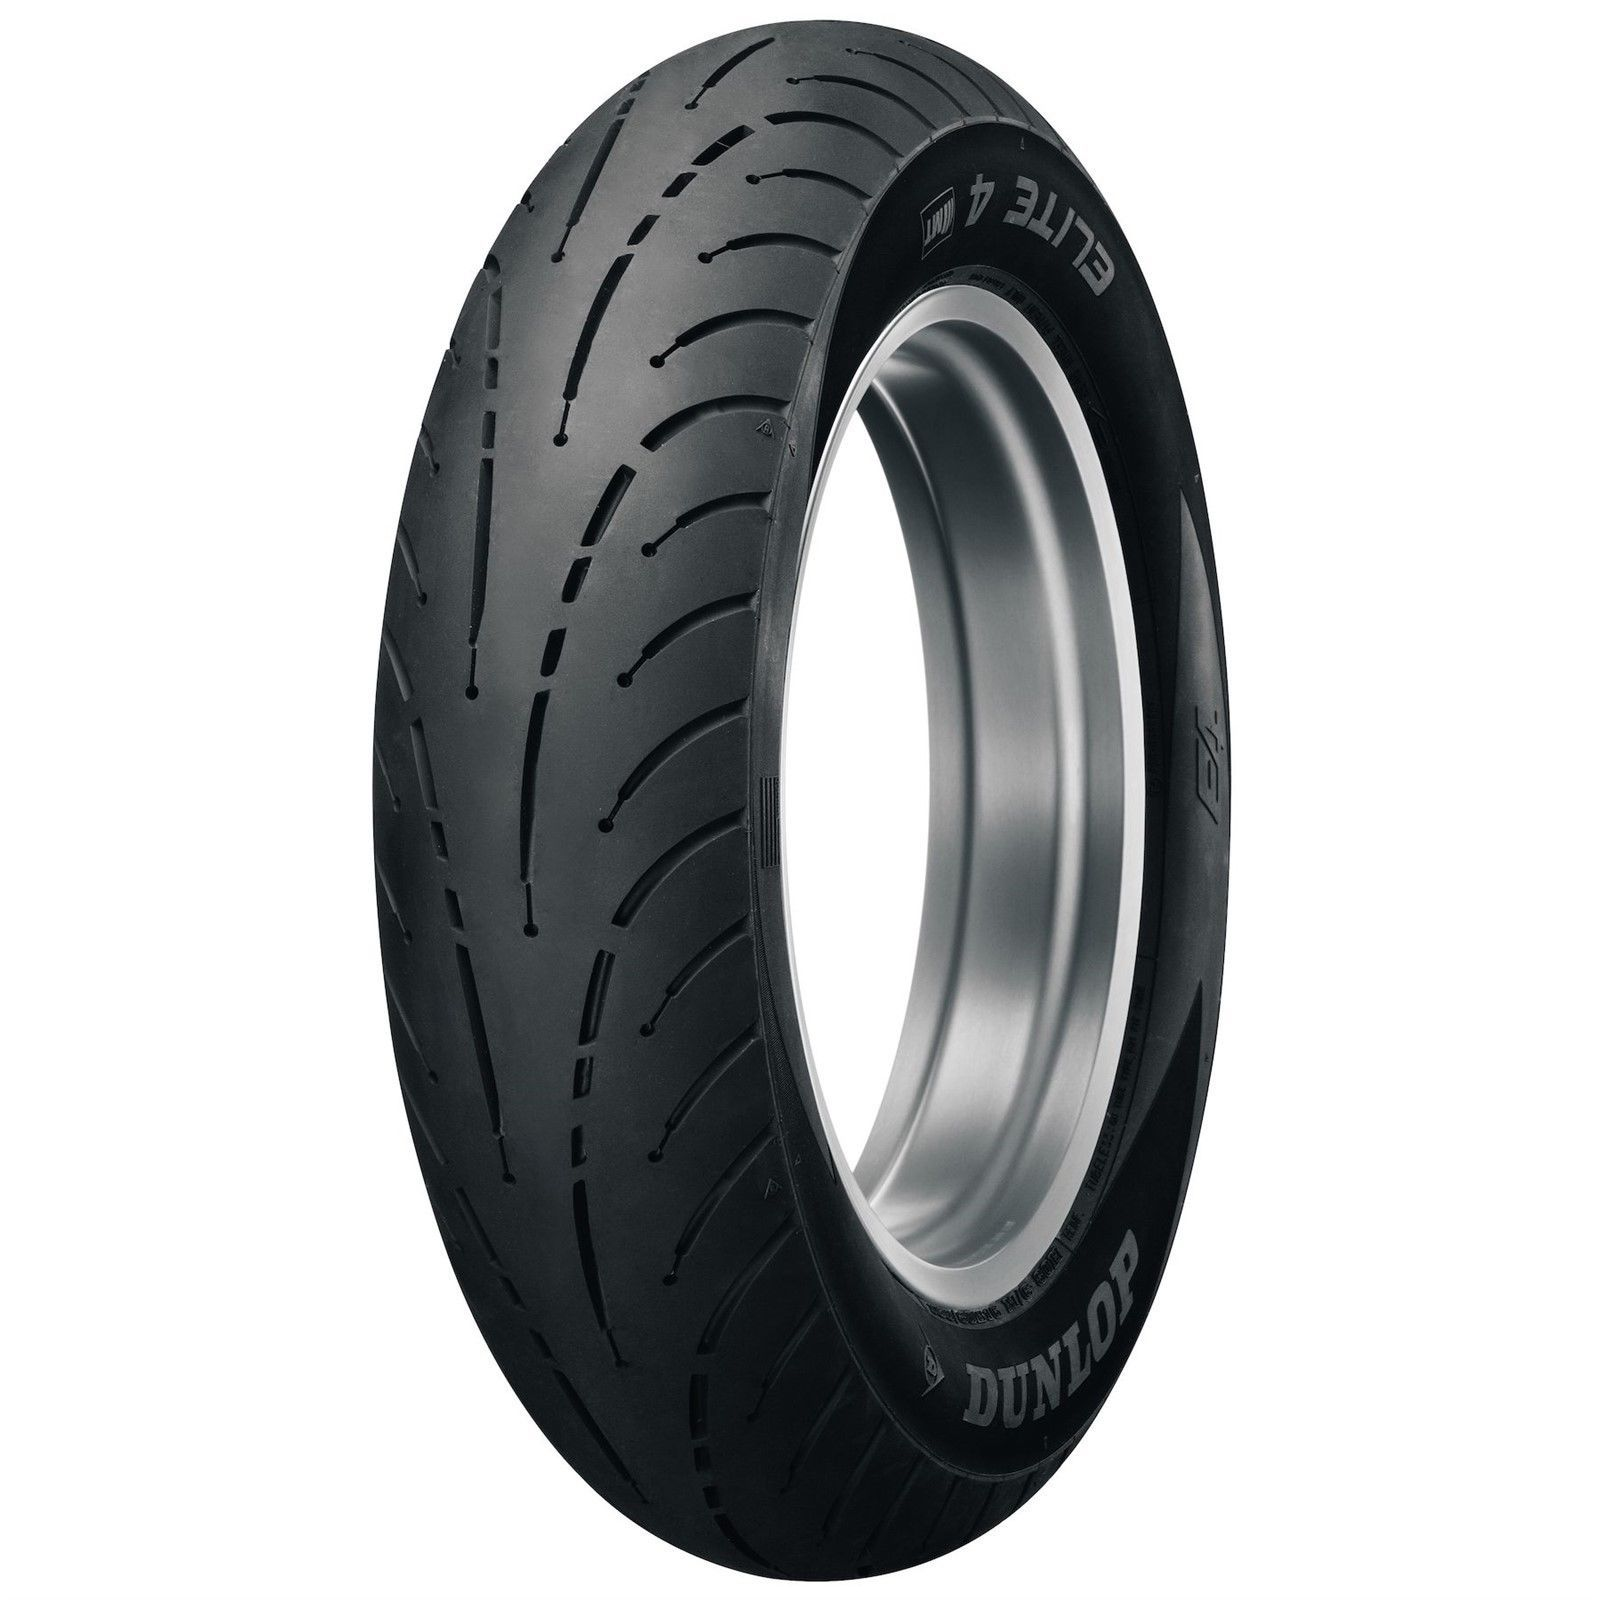 New Dunlop Elite 4 180/60R16 Radial Rear Motorcycle Tire 80H High Mileage